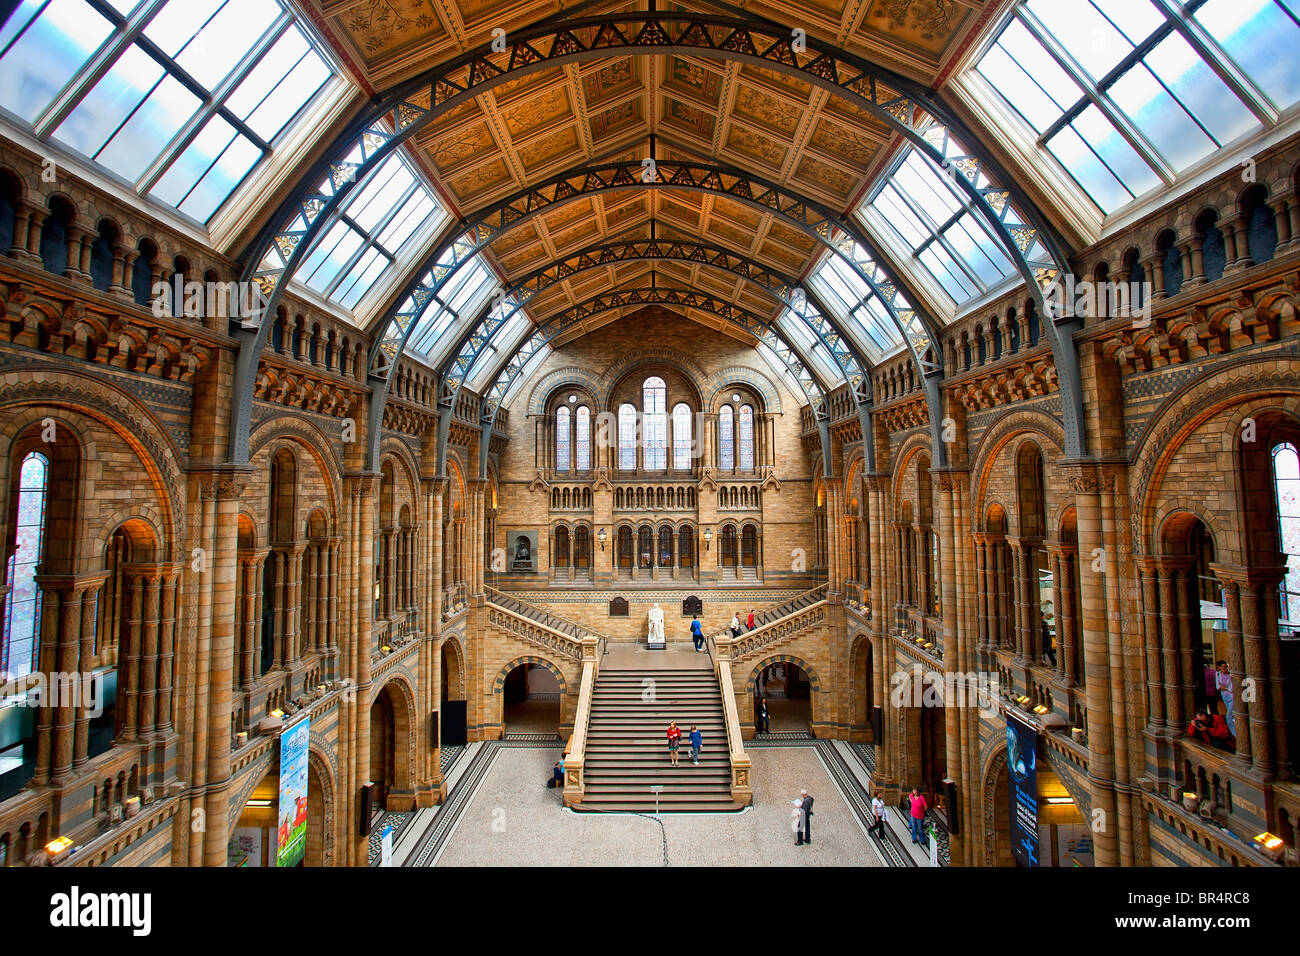 Europe, United Kingdom, England, London, Central Hall of the Natural History Museum - Stock Image